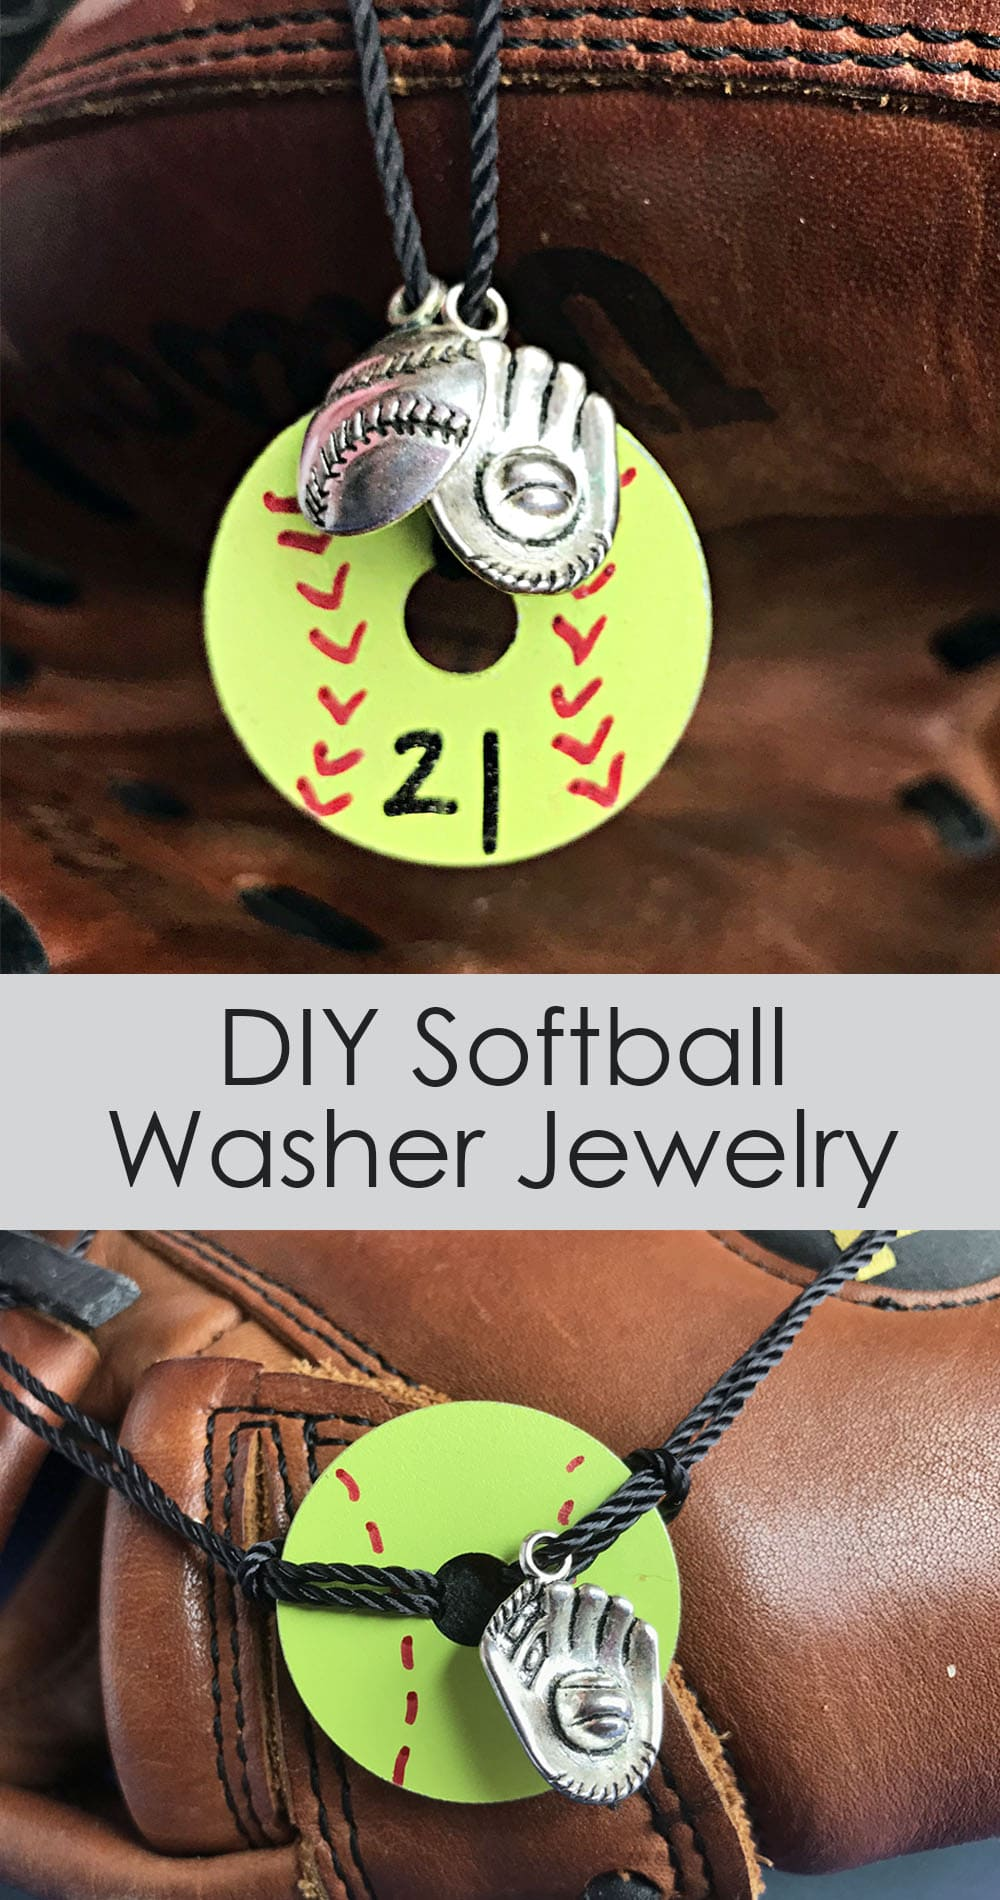 Display of Softball Washer Jewelry